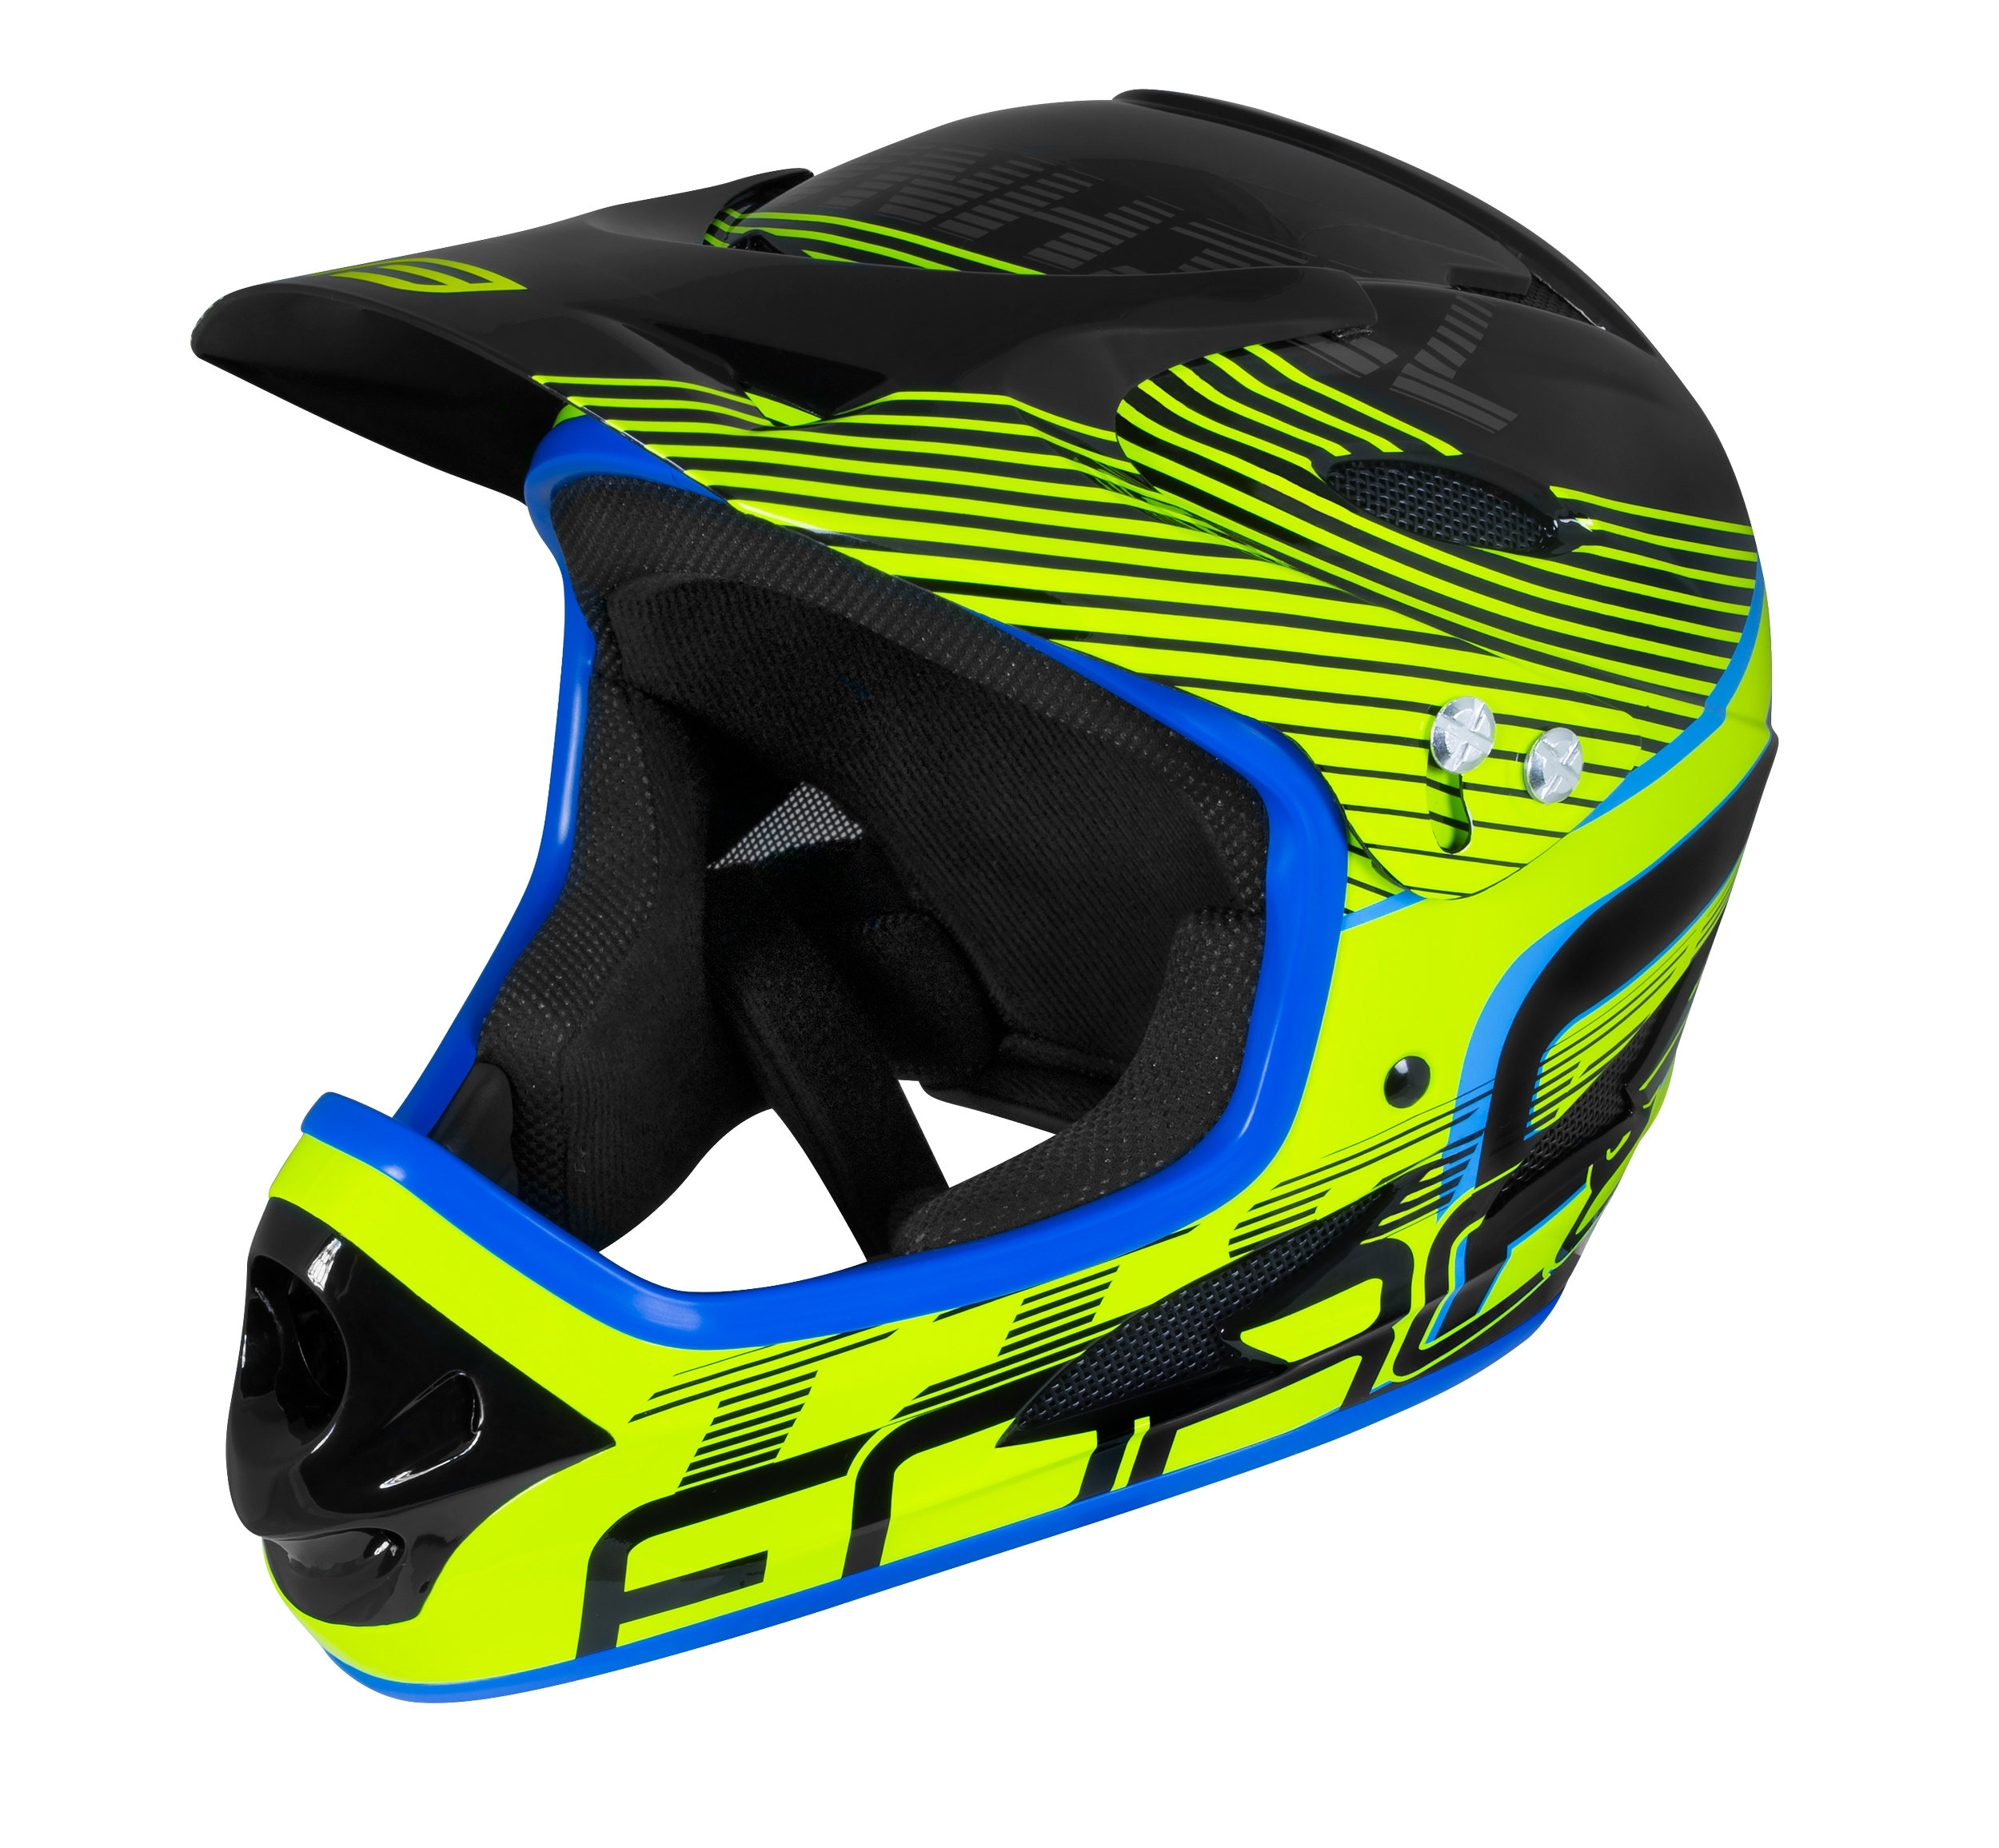 přilba FORCE TIGER downhill, črn-fluo-modrá L - XL